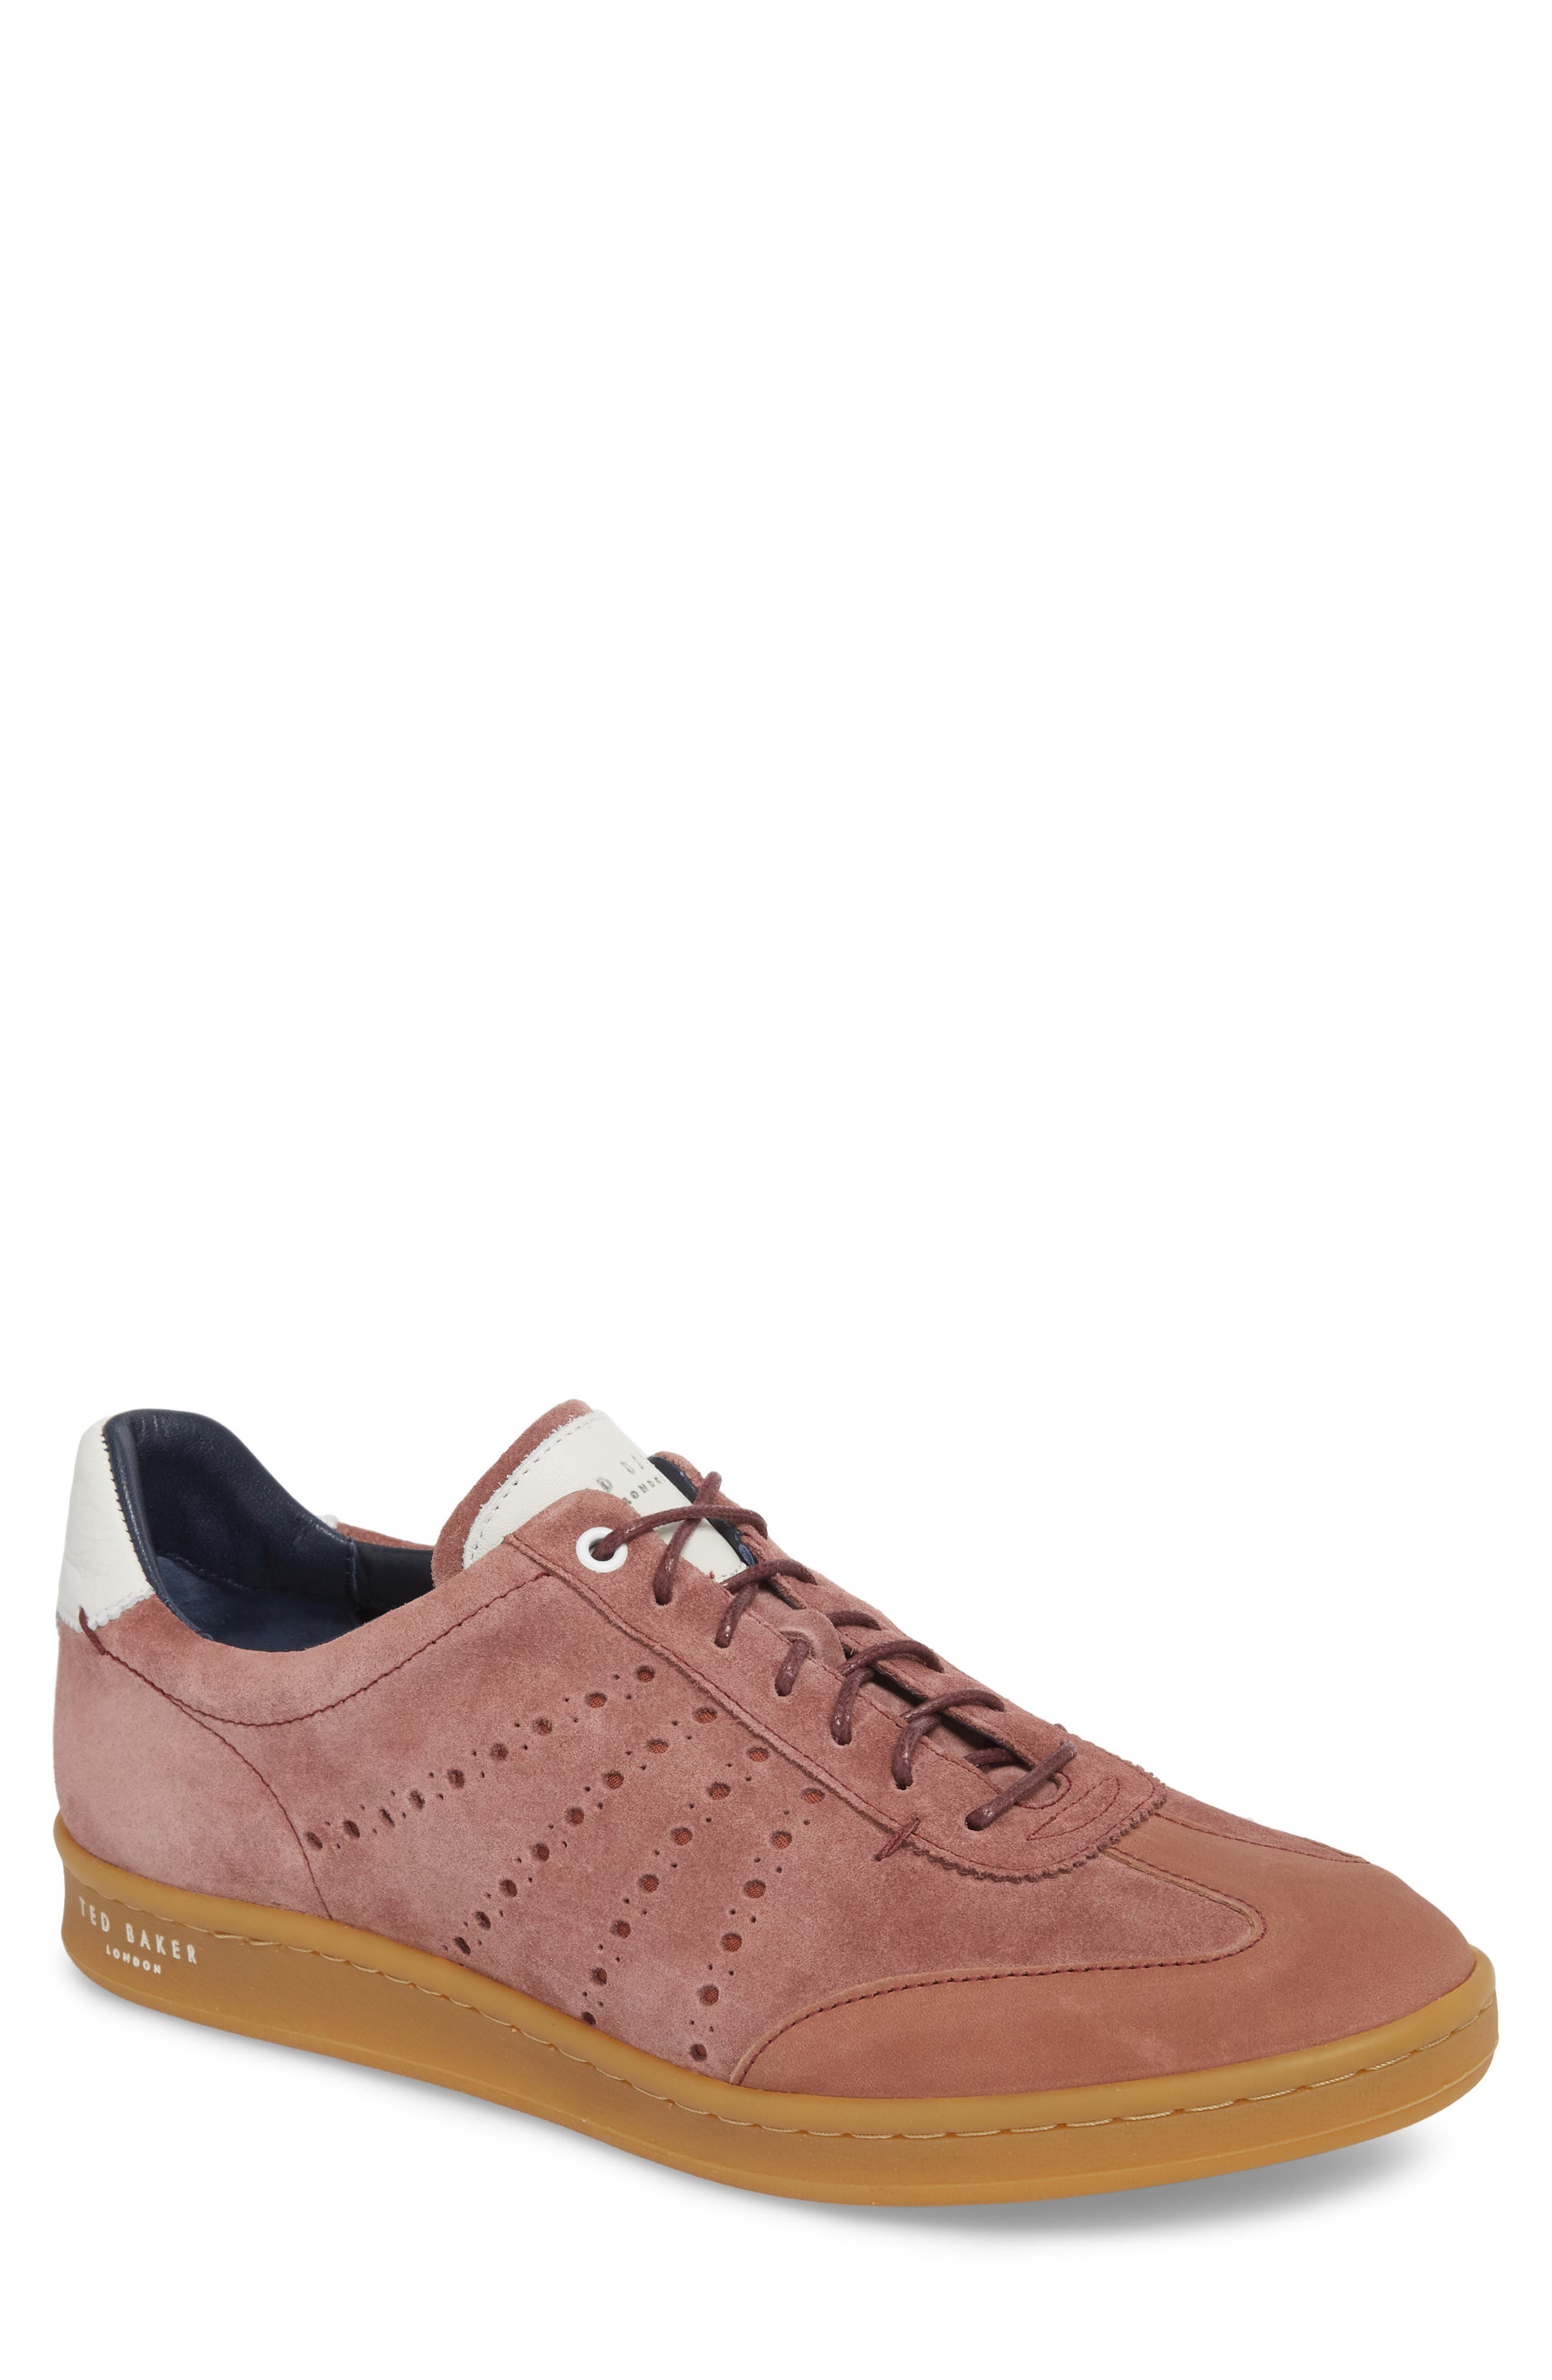 Orlees Low Top Sneaker,                         Main,                         color, Pink Leather/ Suede